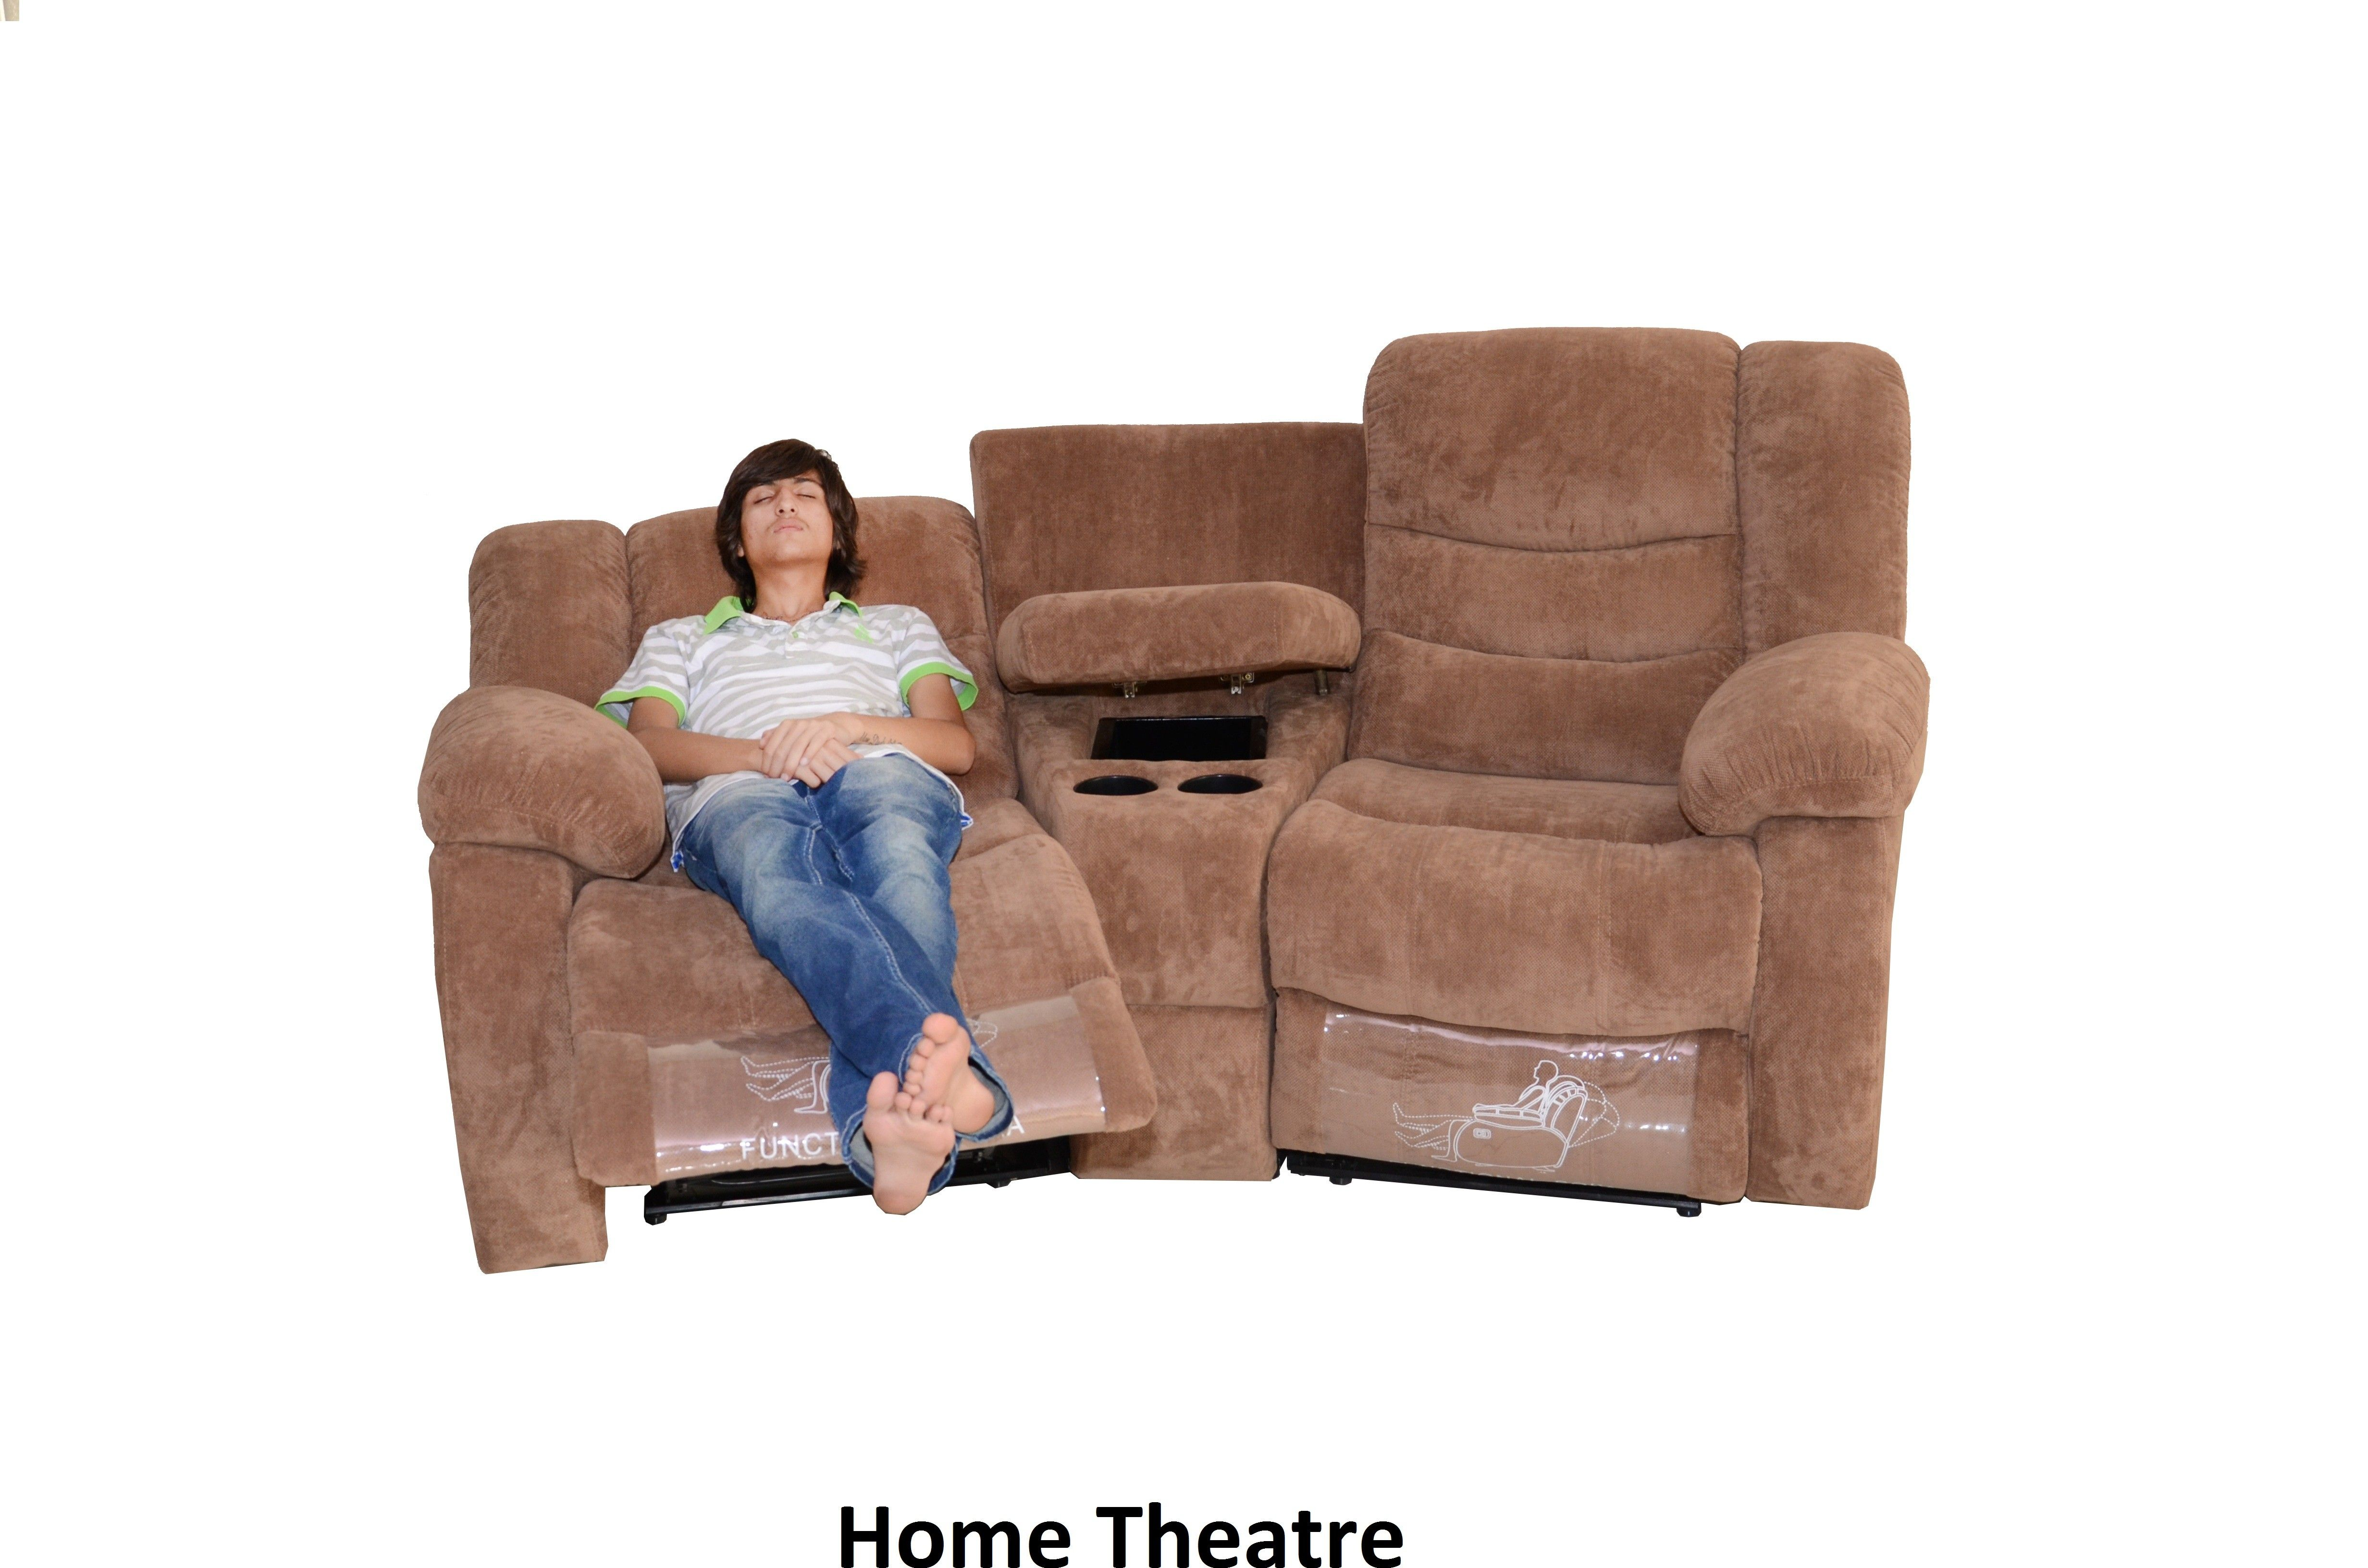 HOME THEATER U2013 Two Seater With Recliner Arm Rest Storage Below  And Cup HoldersUpholstery Of Fabric An Option PUFrame Is Made Pinewood  Recliner Holder L29